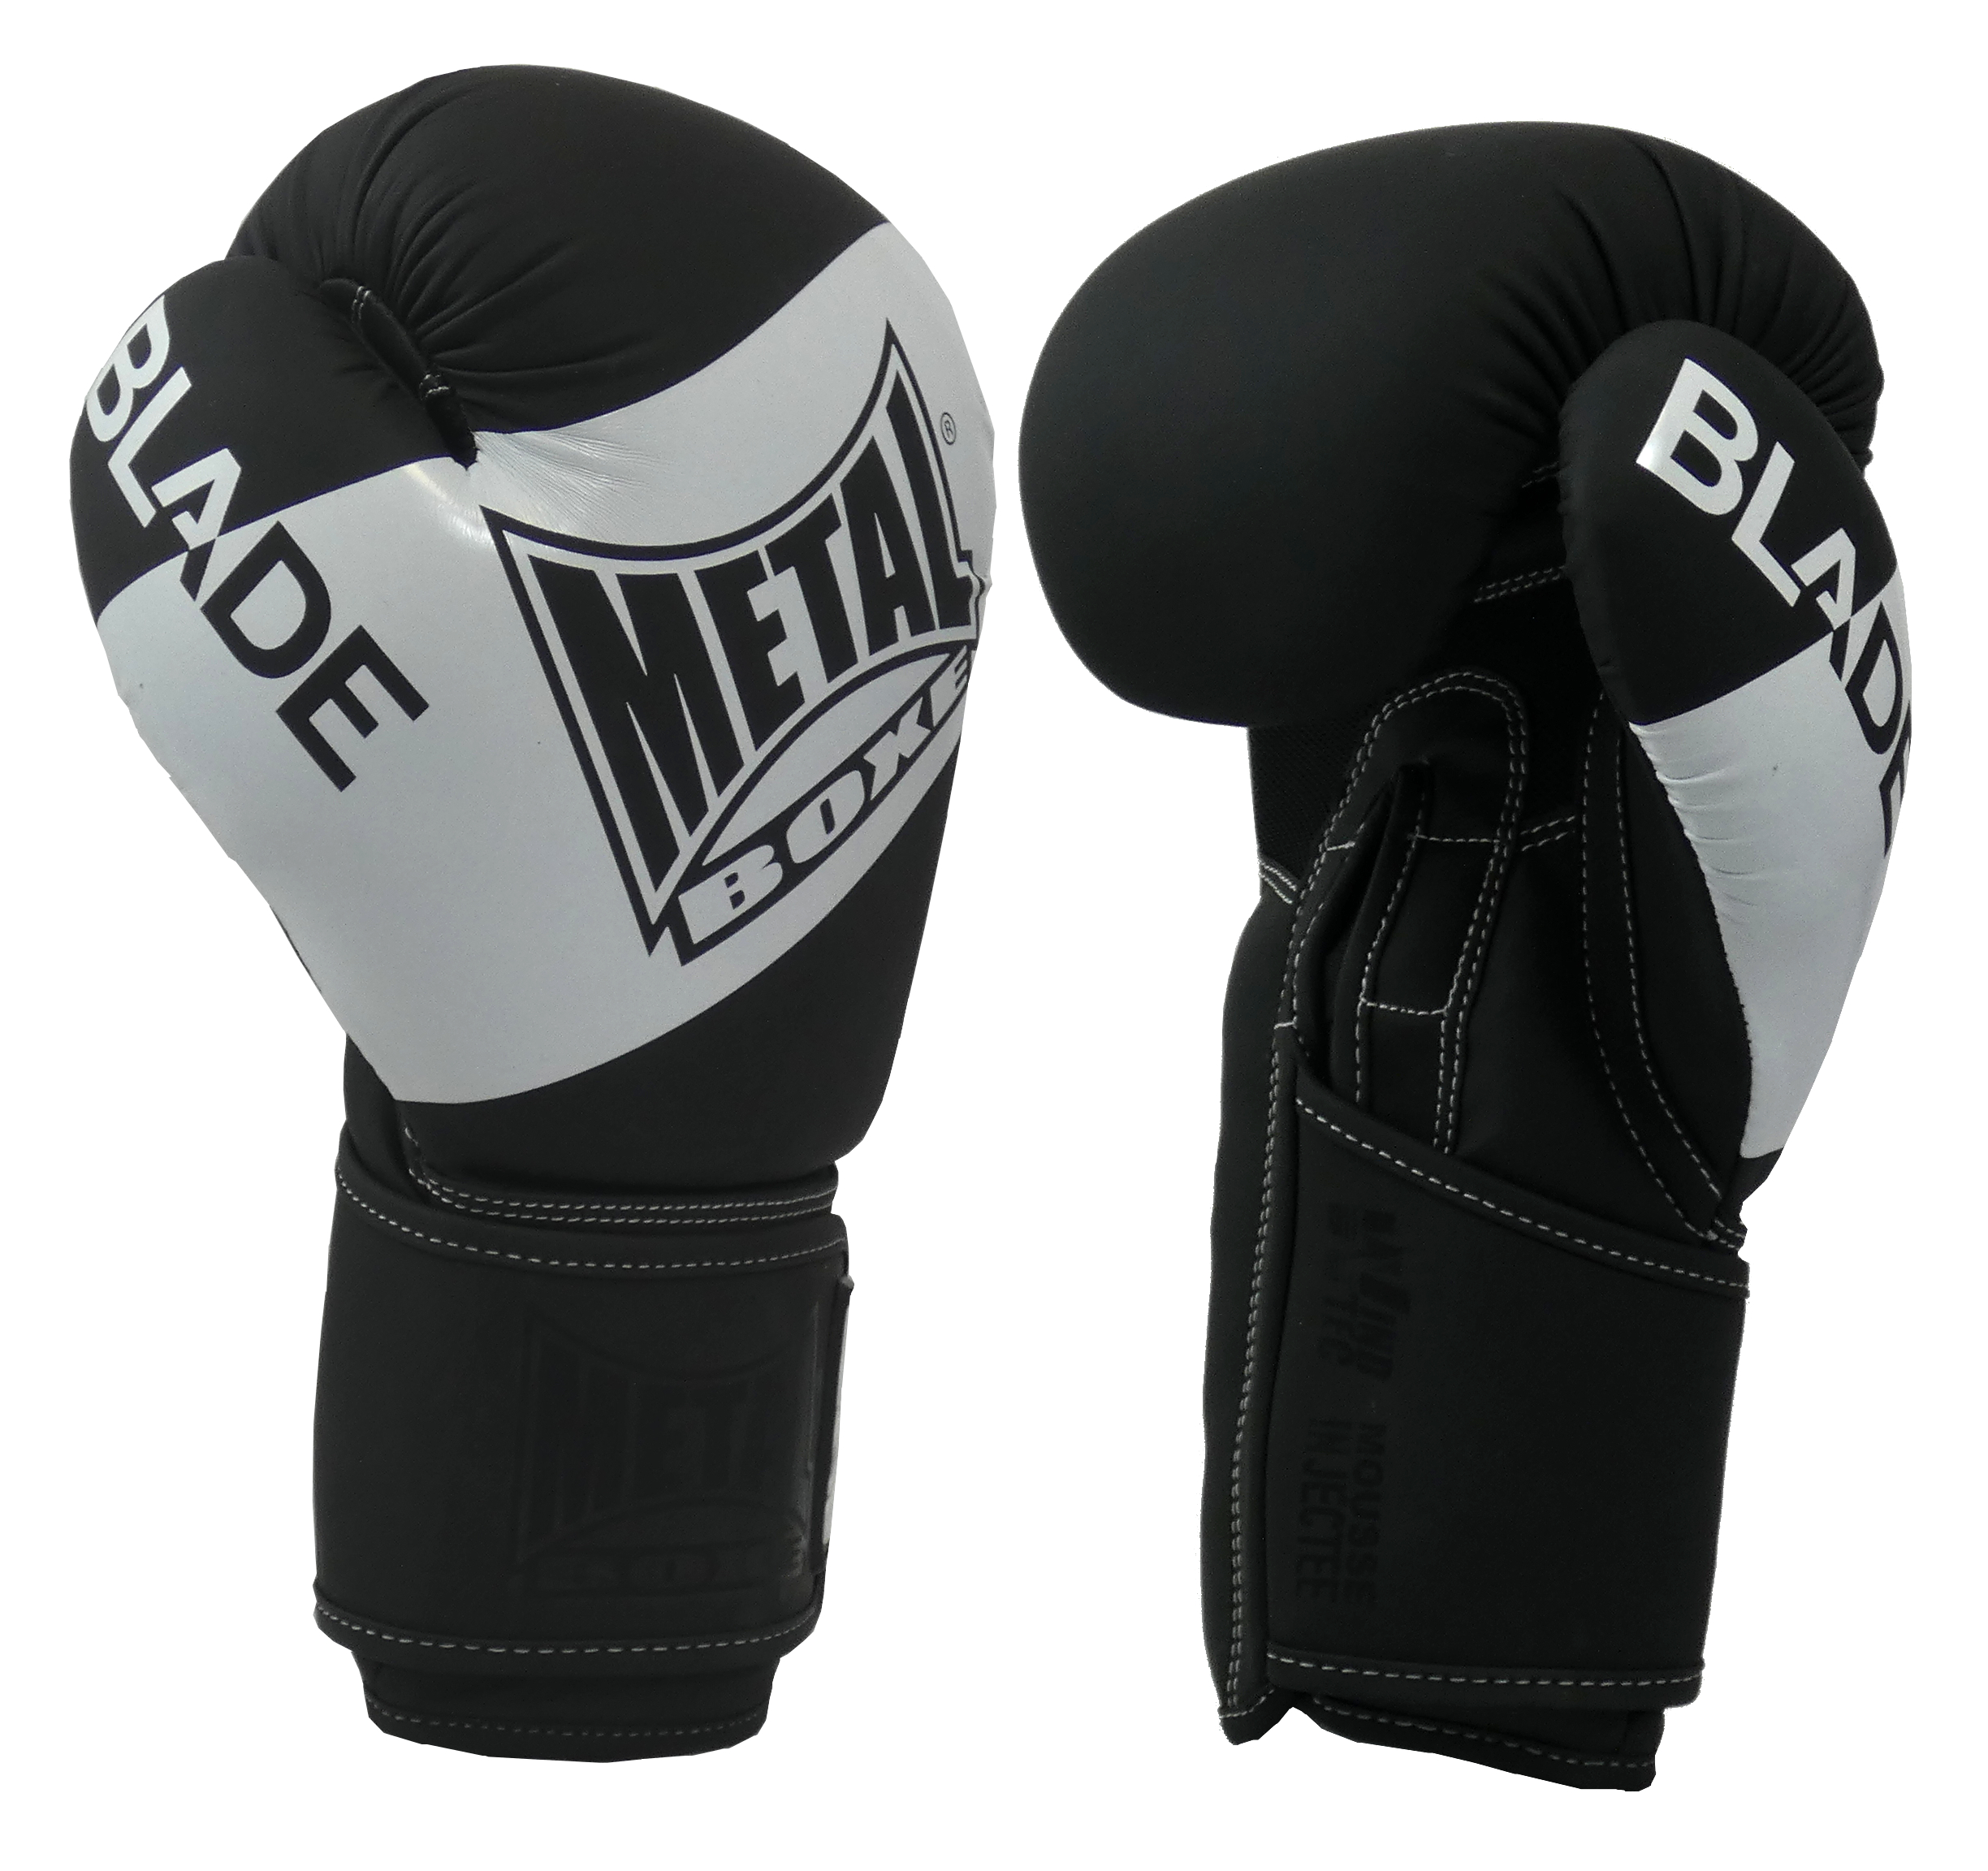 Gants de boxe Métal boxe Blade Black and White